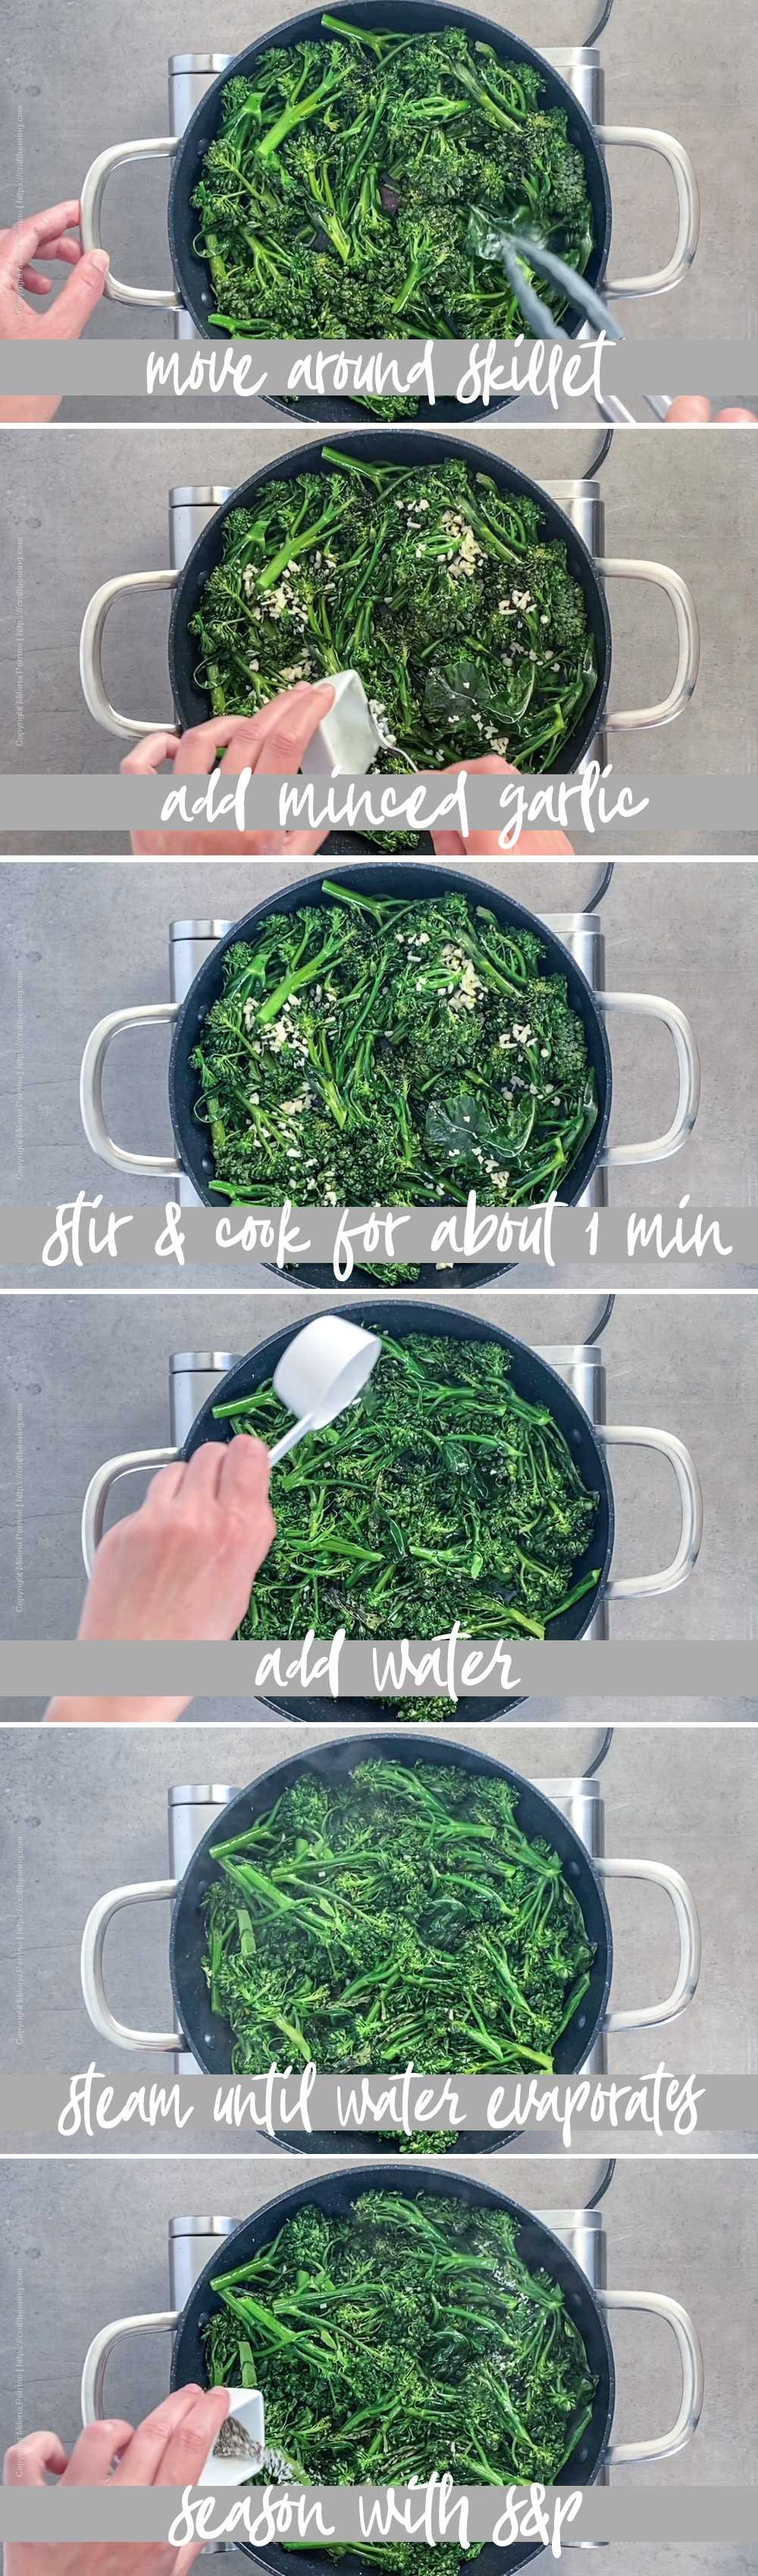 How to cook broccolini in a pan (steam fry technique) - part 2